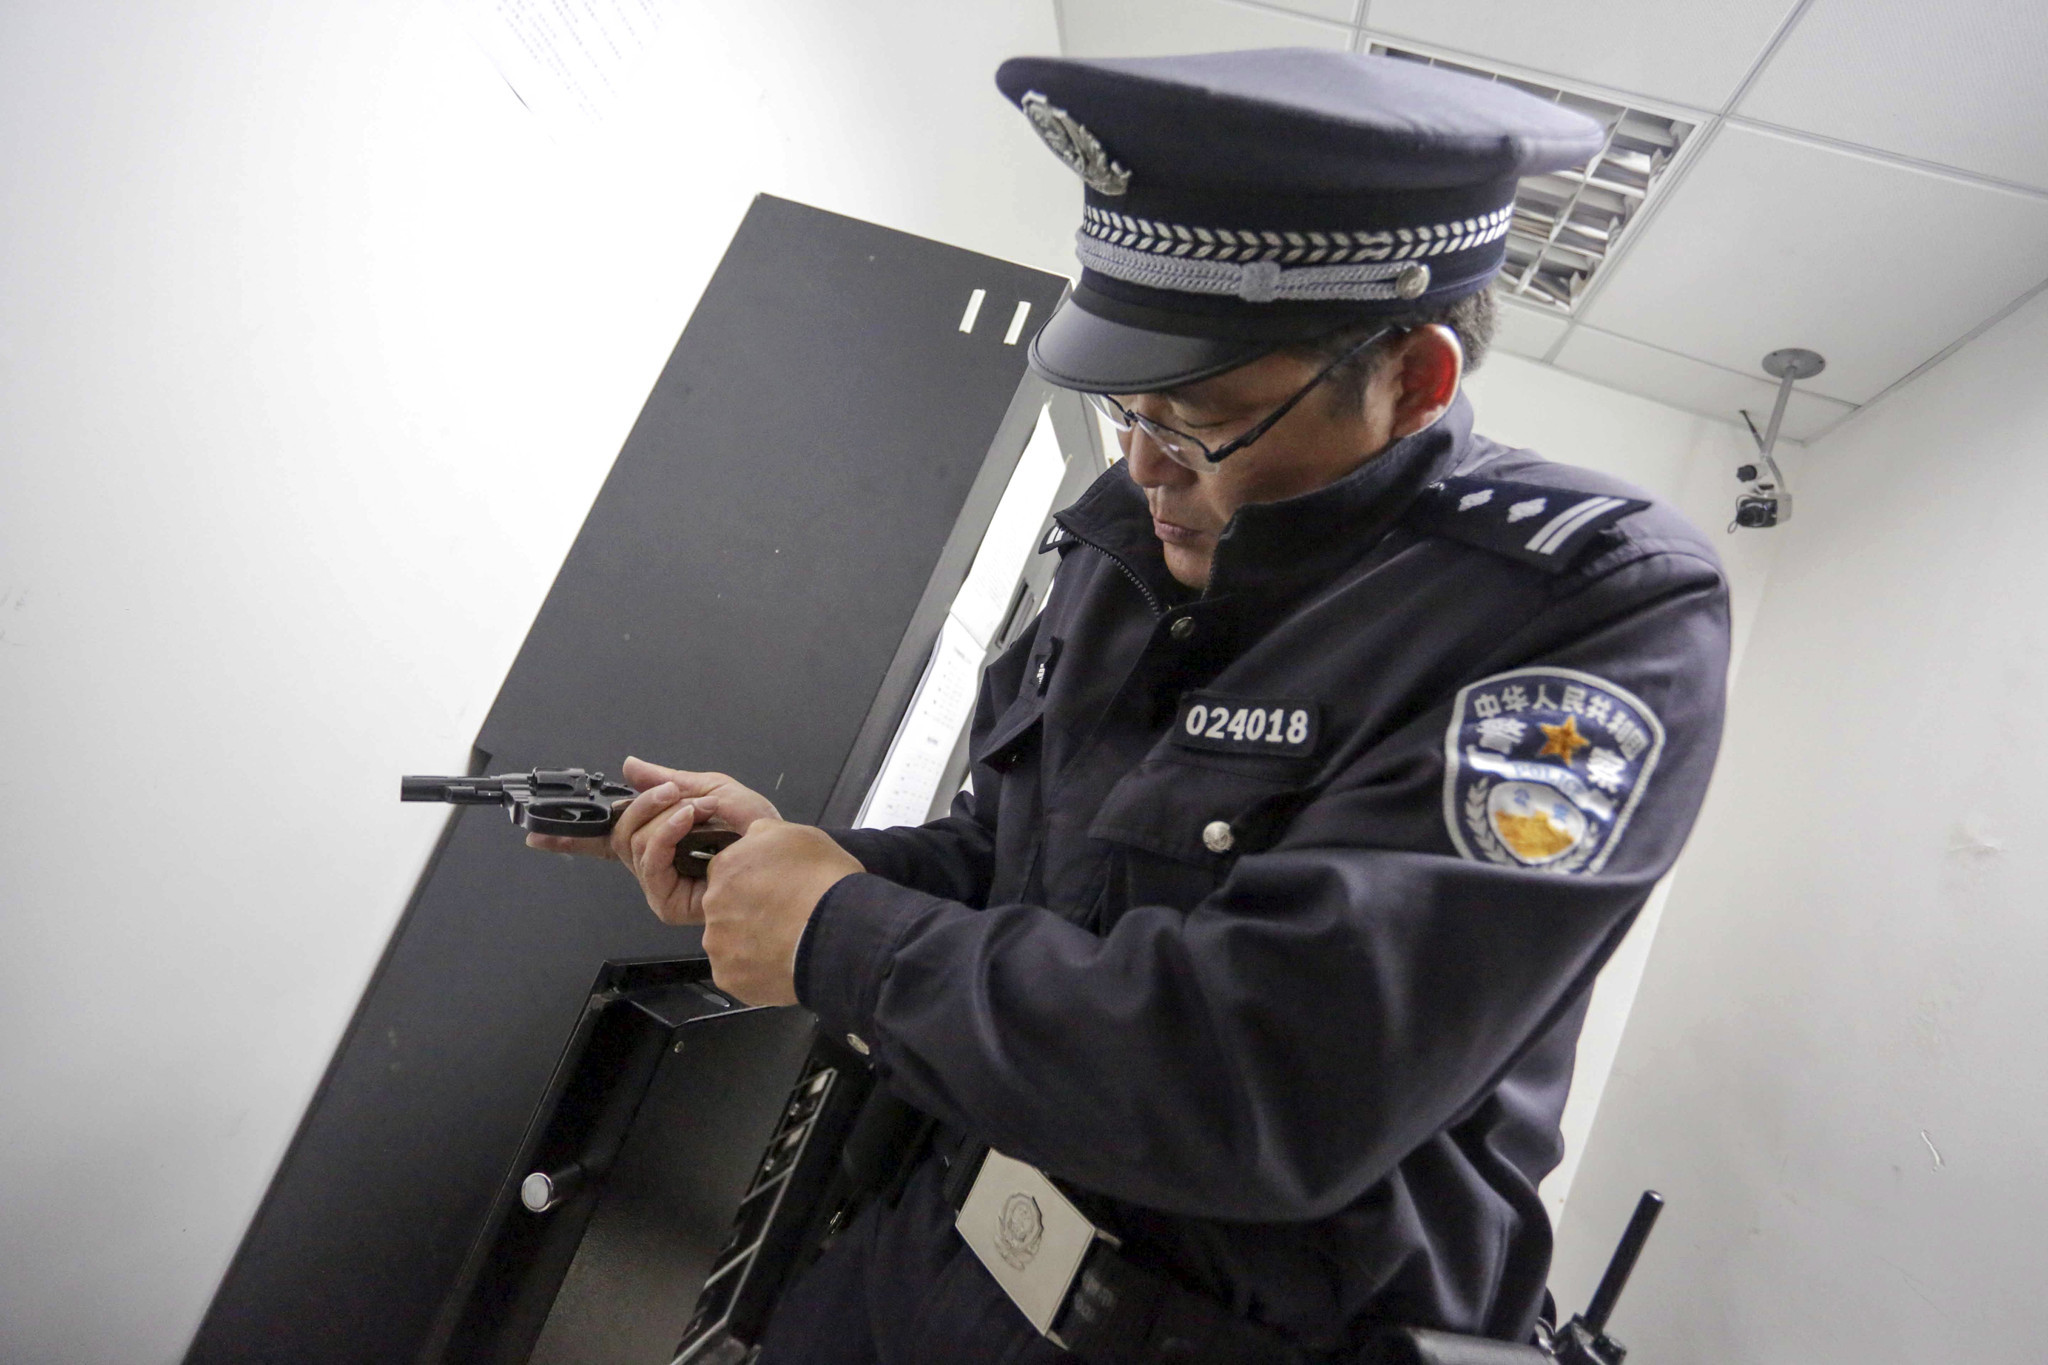 China rearms Beijing beat police - 430.0KB